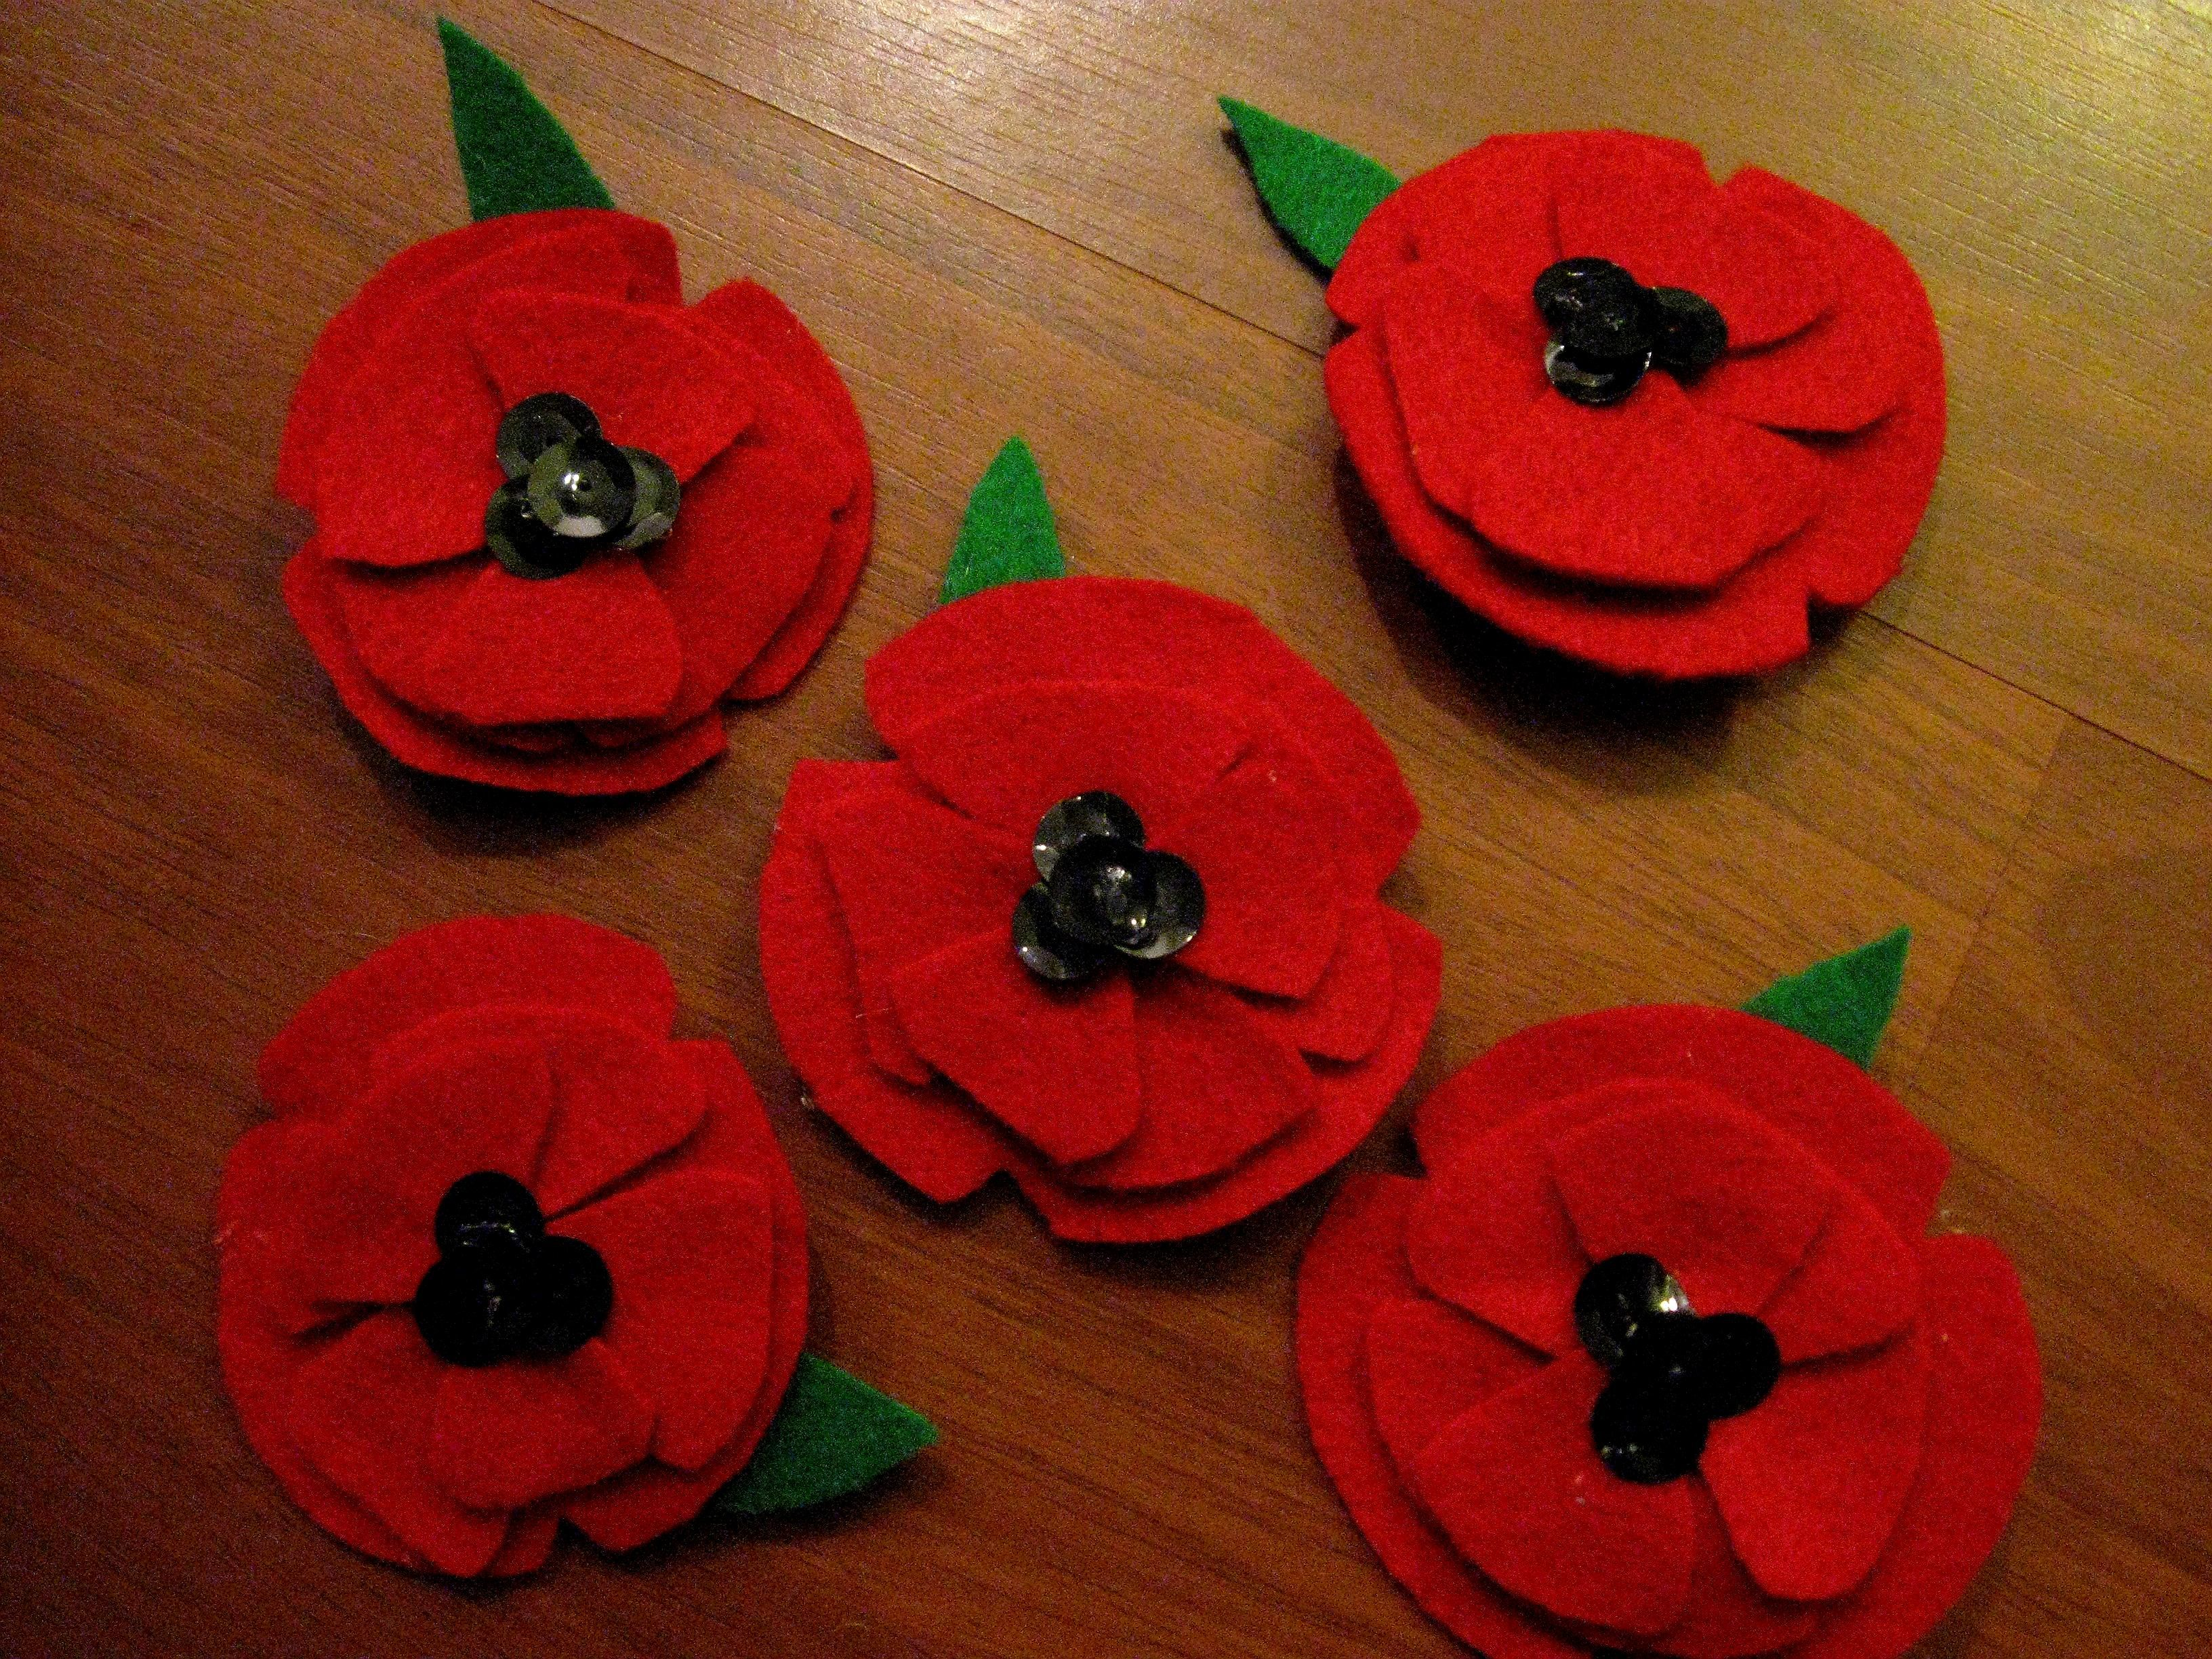 Make Your Own Armistice Day Poppy Pin Pinterest Poppy Pins